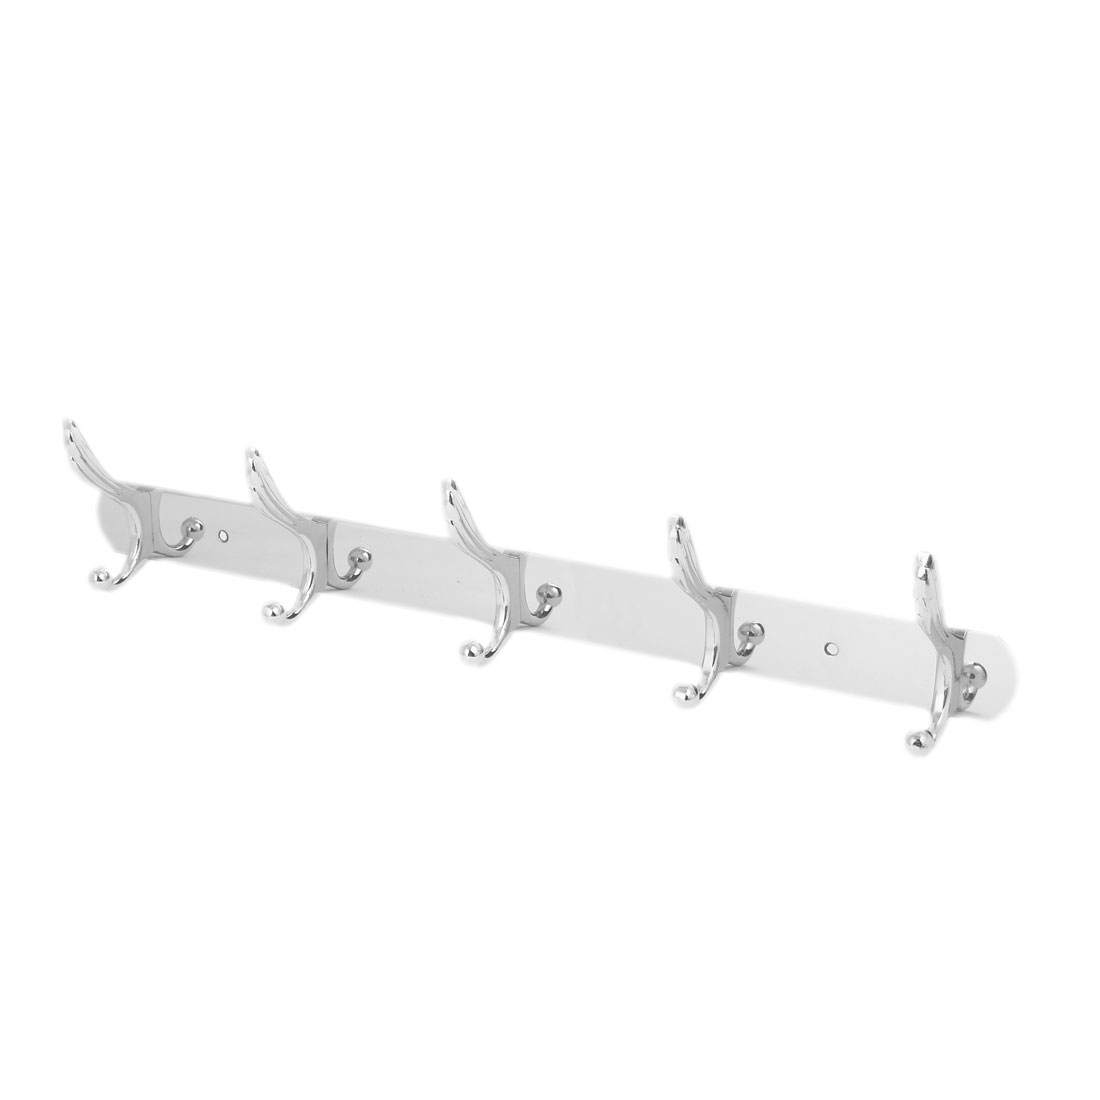 Stainless Steel Wall Mounted 5 Double Hook Hanger Rail Rack for Robe Coat Towel